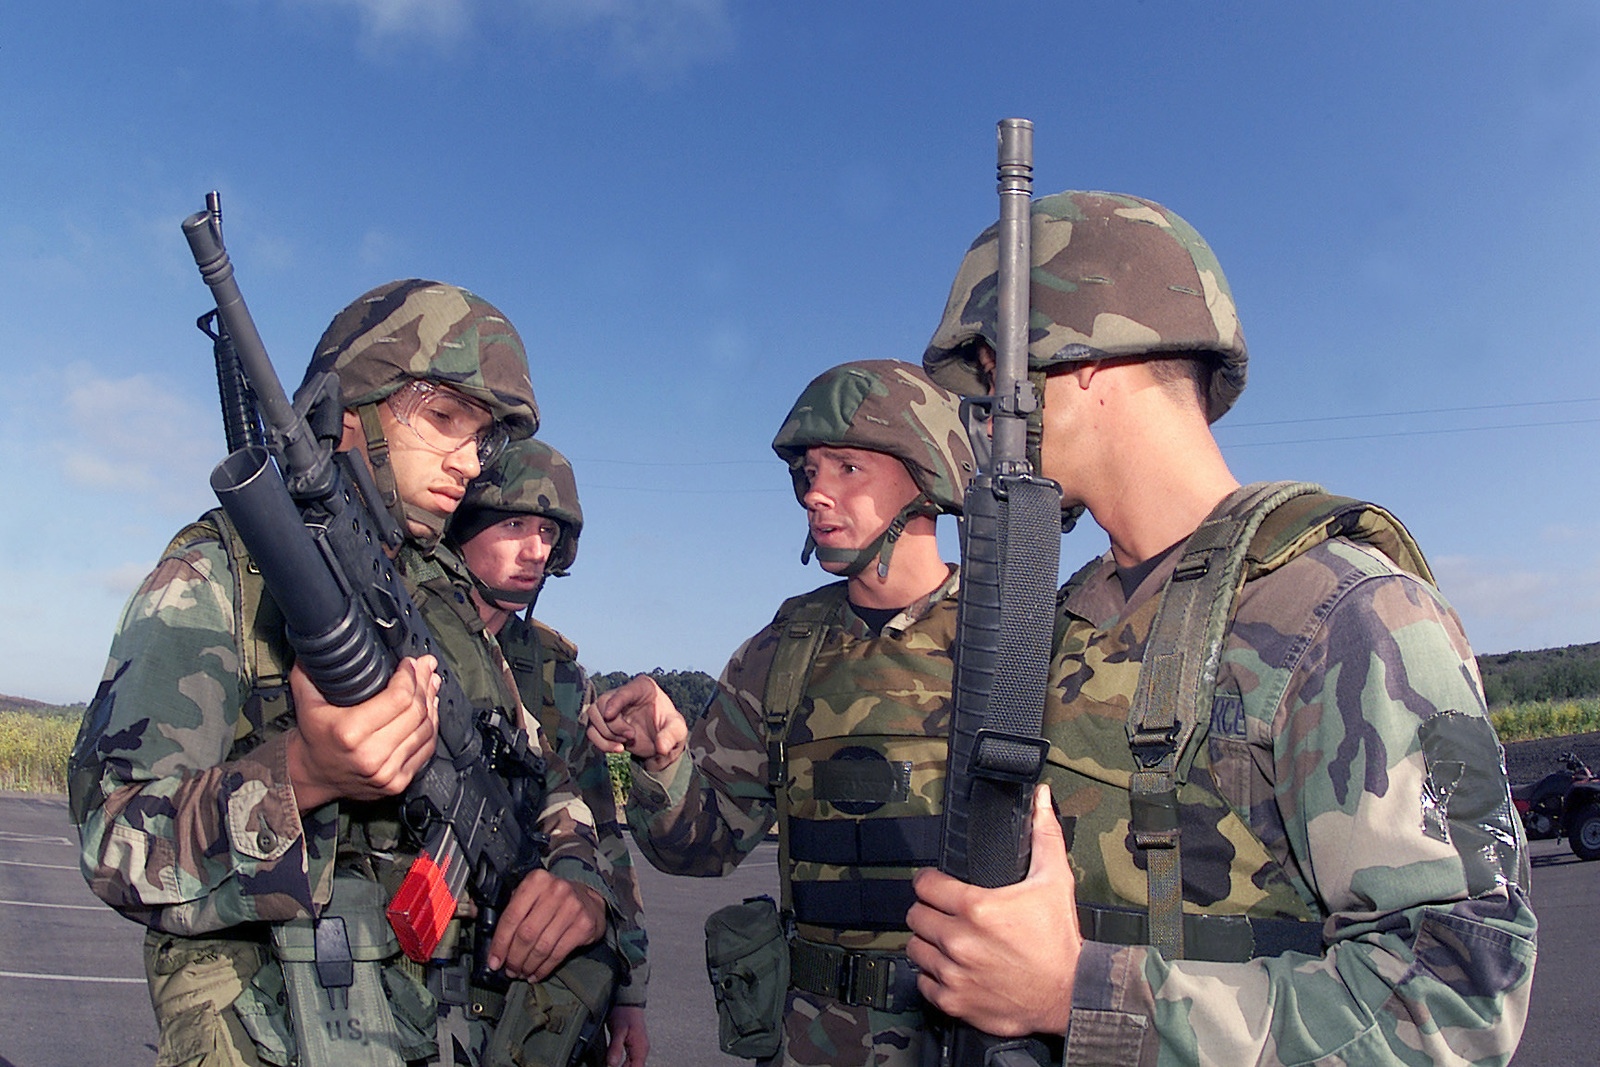 US Air Force (USAF) AIRMAN First Class (A1C) Jasen Rodriguez (left) armed with a 5.56mm M16A1 rifle with a 40mm M203 grenade launcher, listens to the instruction of his team chief, USAF First Lieutenant (1LT) Tim McCarty (center) as STAFF Sergeant (SSGT) David Ball (background), and A1C Brad Terry, look on. They are member of the 45th Space Wing (SW) Security Forces Squadron (SFS), preparing to participate the marksmanship competition at Vandenberg Air Force Base (AFB) California (CA), during Exercise GUARDIAN CHALLENGE 2002. Guardian Challenge, a four-day space and missile competition, is hosted annually at Vandenberg AFB, CA to test the wartime readiness of Air Force Space Command...